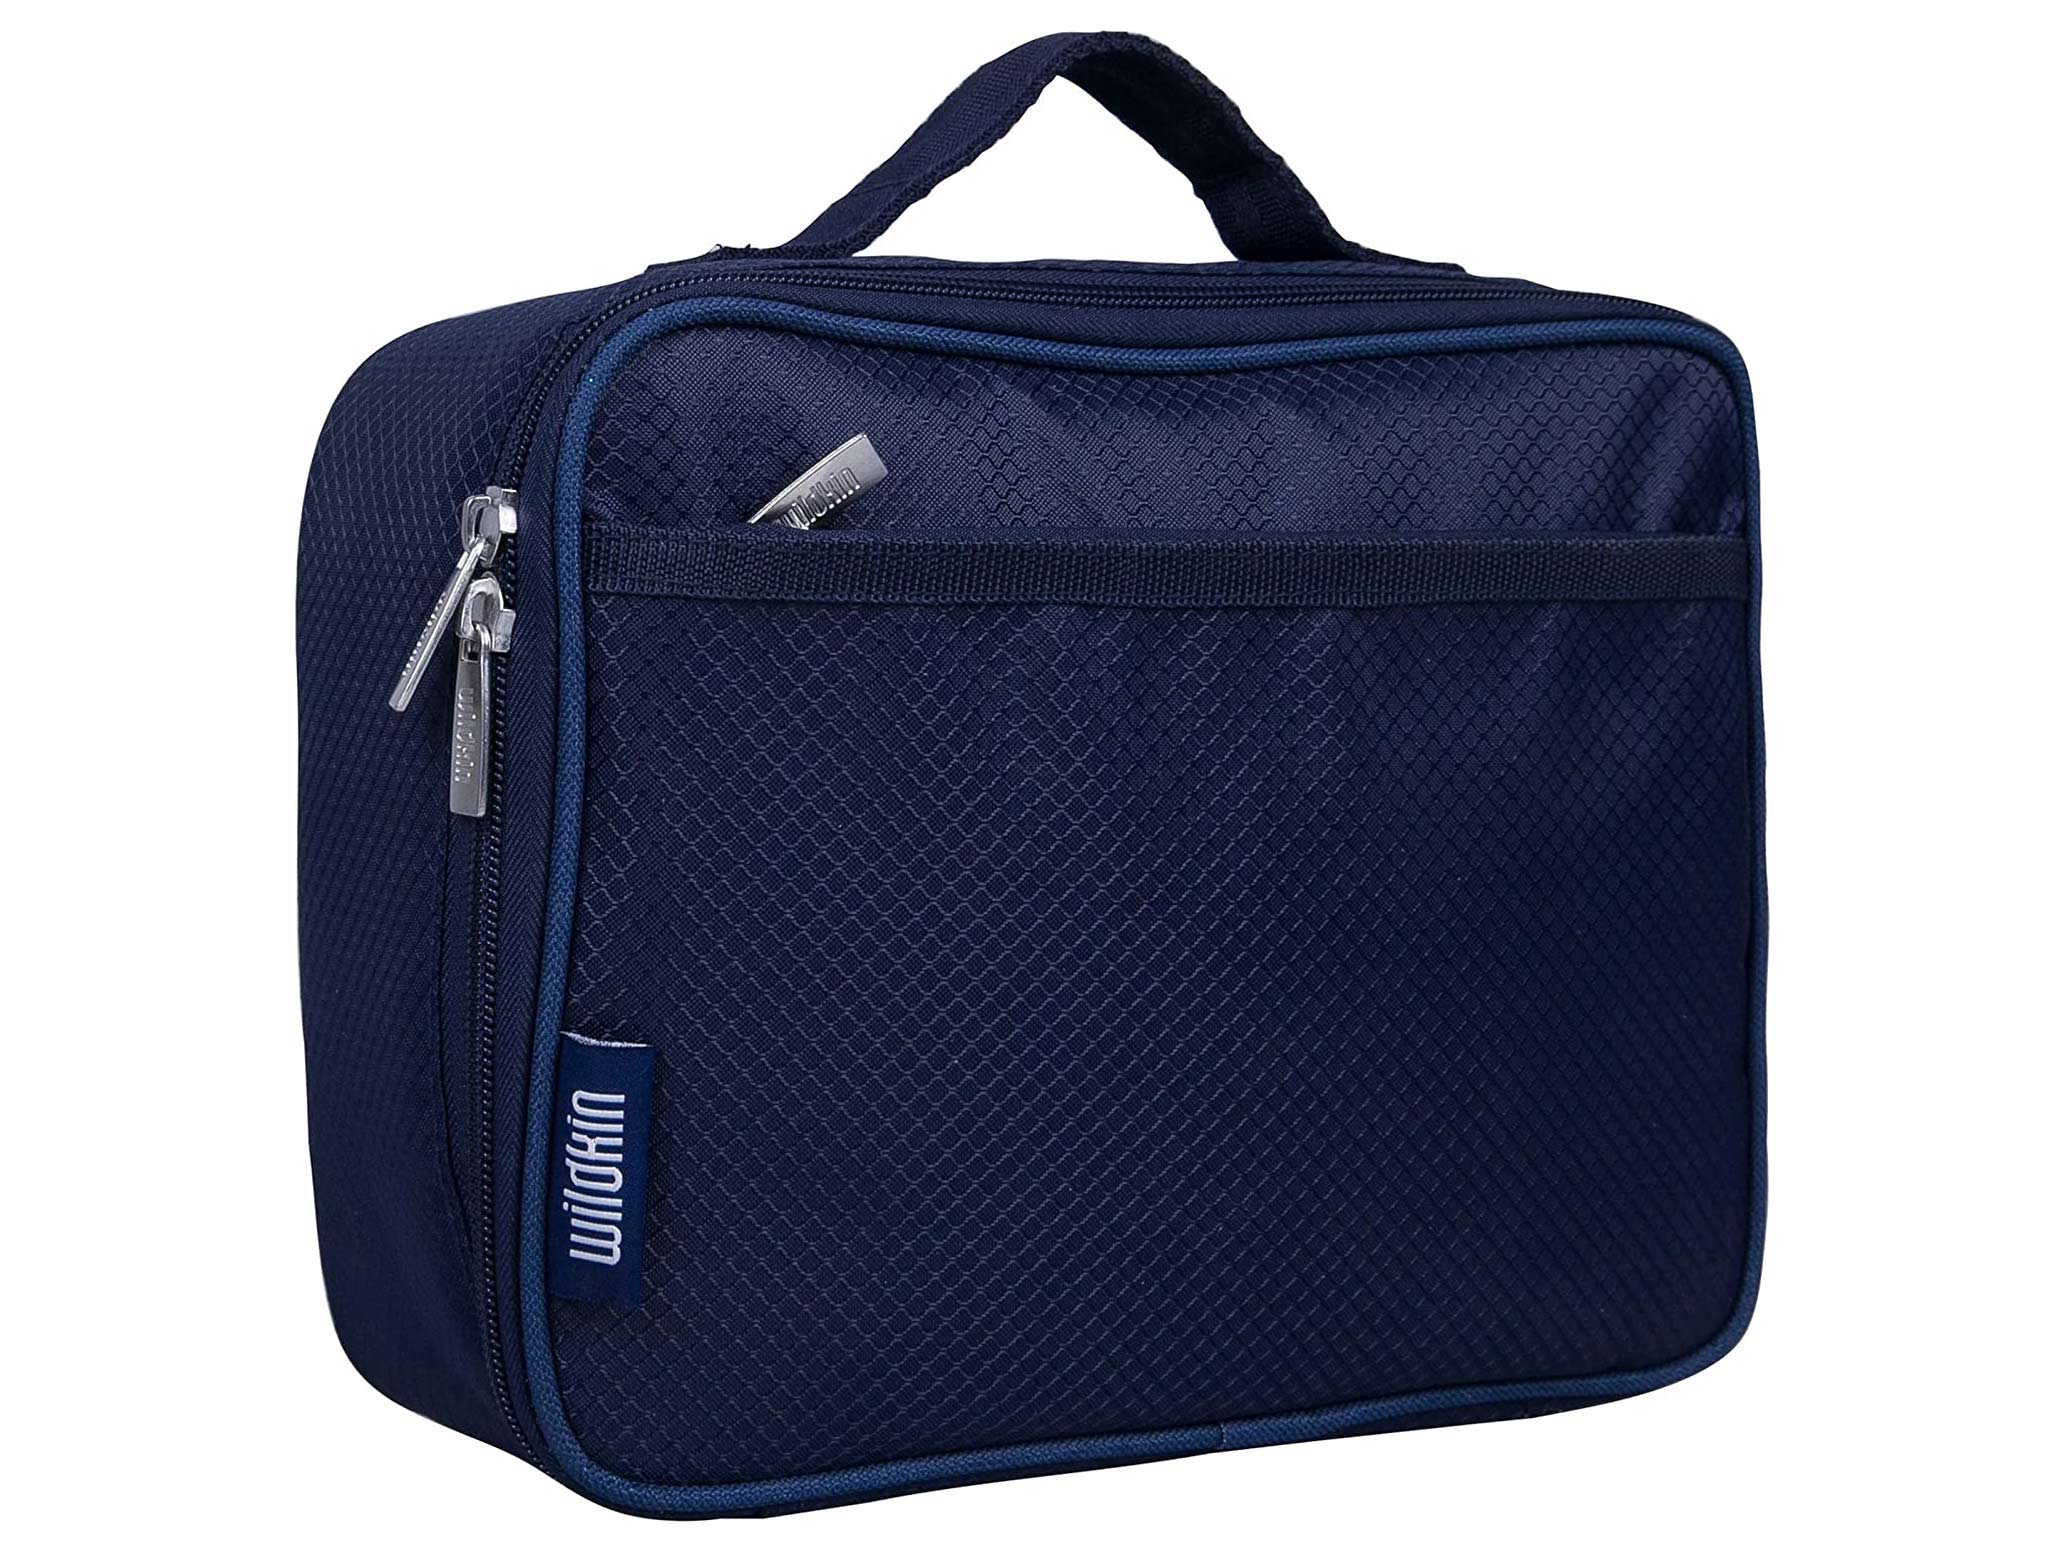 Under Armour 12-Can Soft Cooler